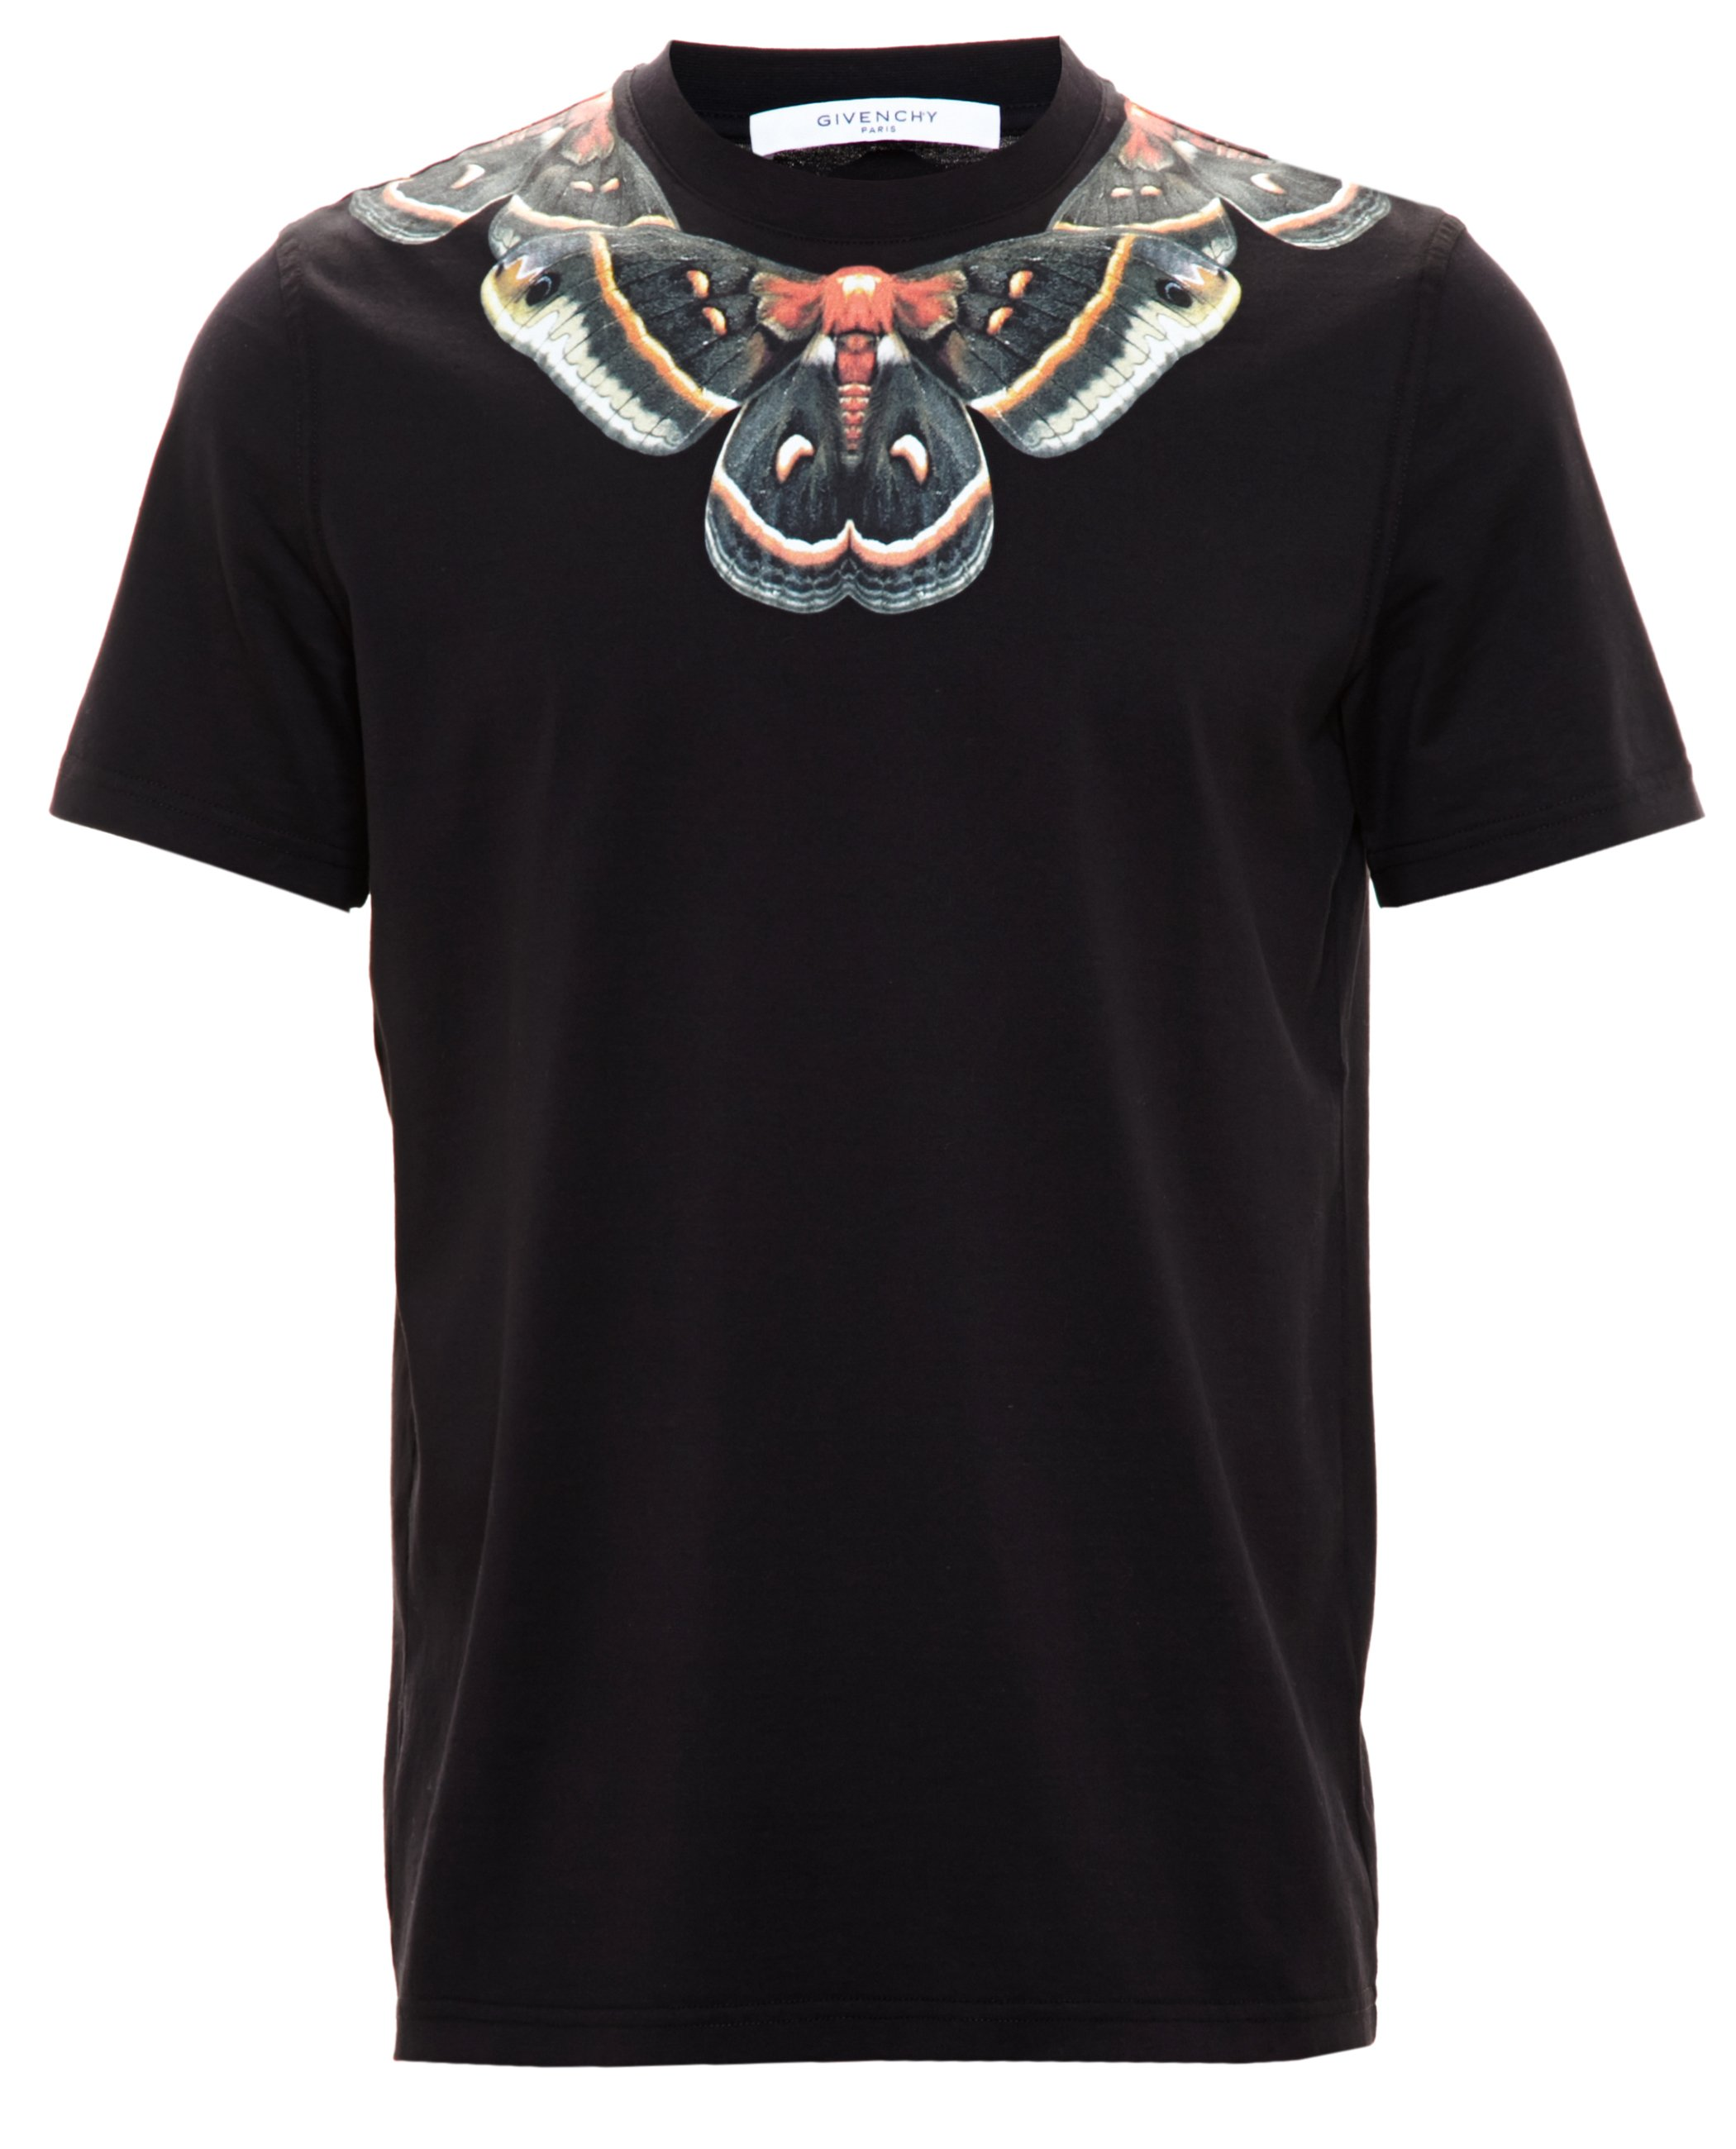 Lyst Givenchy Butterfly T Shirt In Black For Men